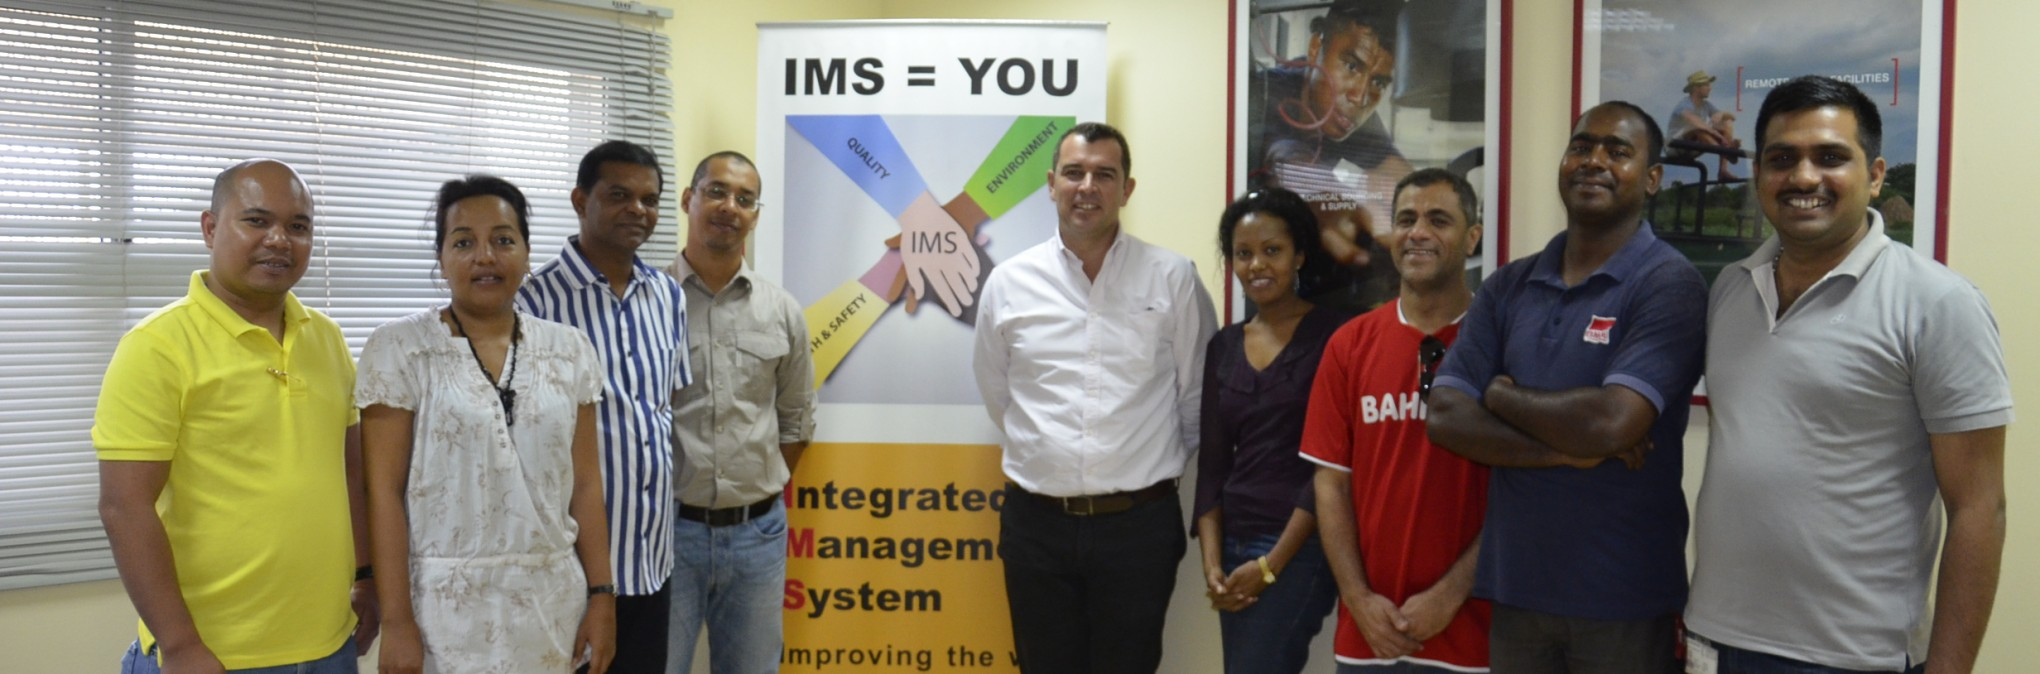 BMMI Djibouti conducts a series of HSE training